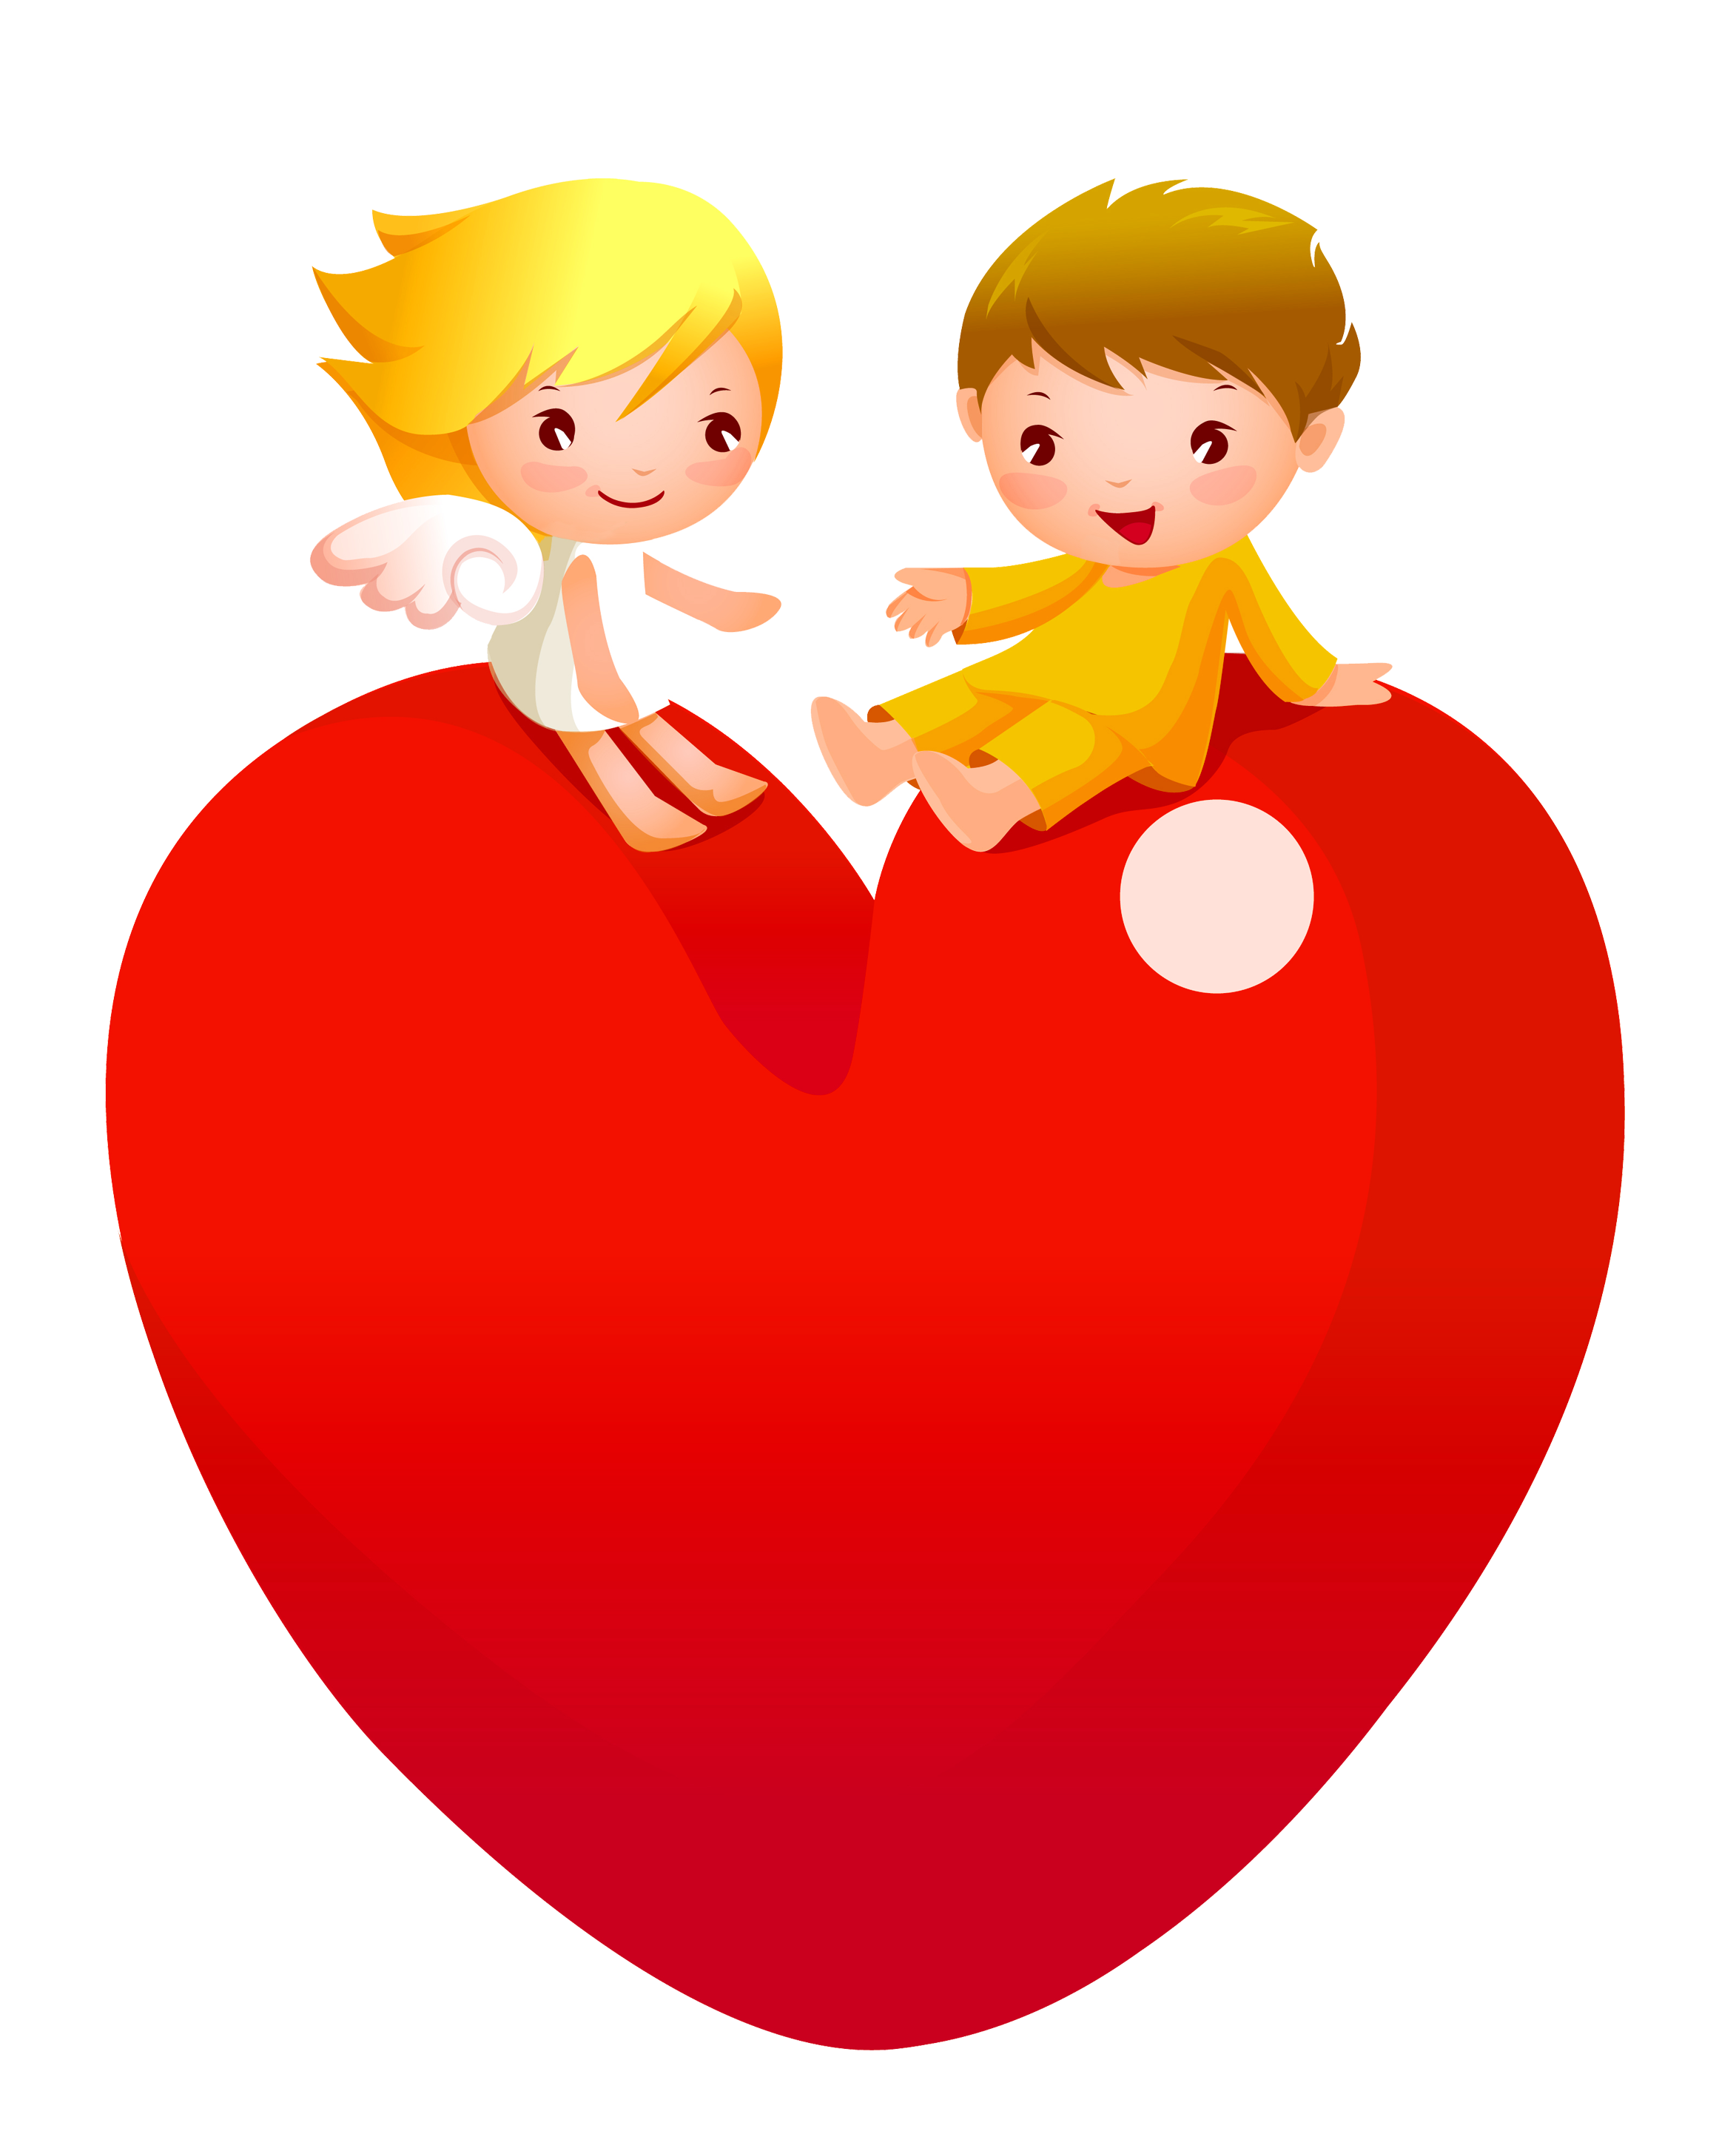 Clipart man heart. Red with angels png